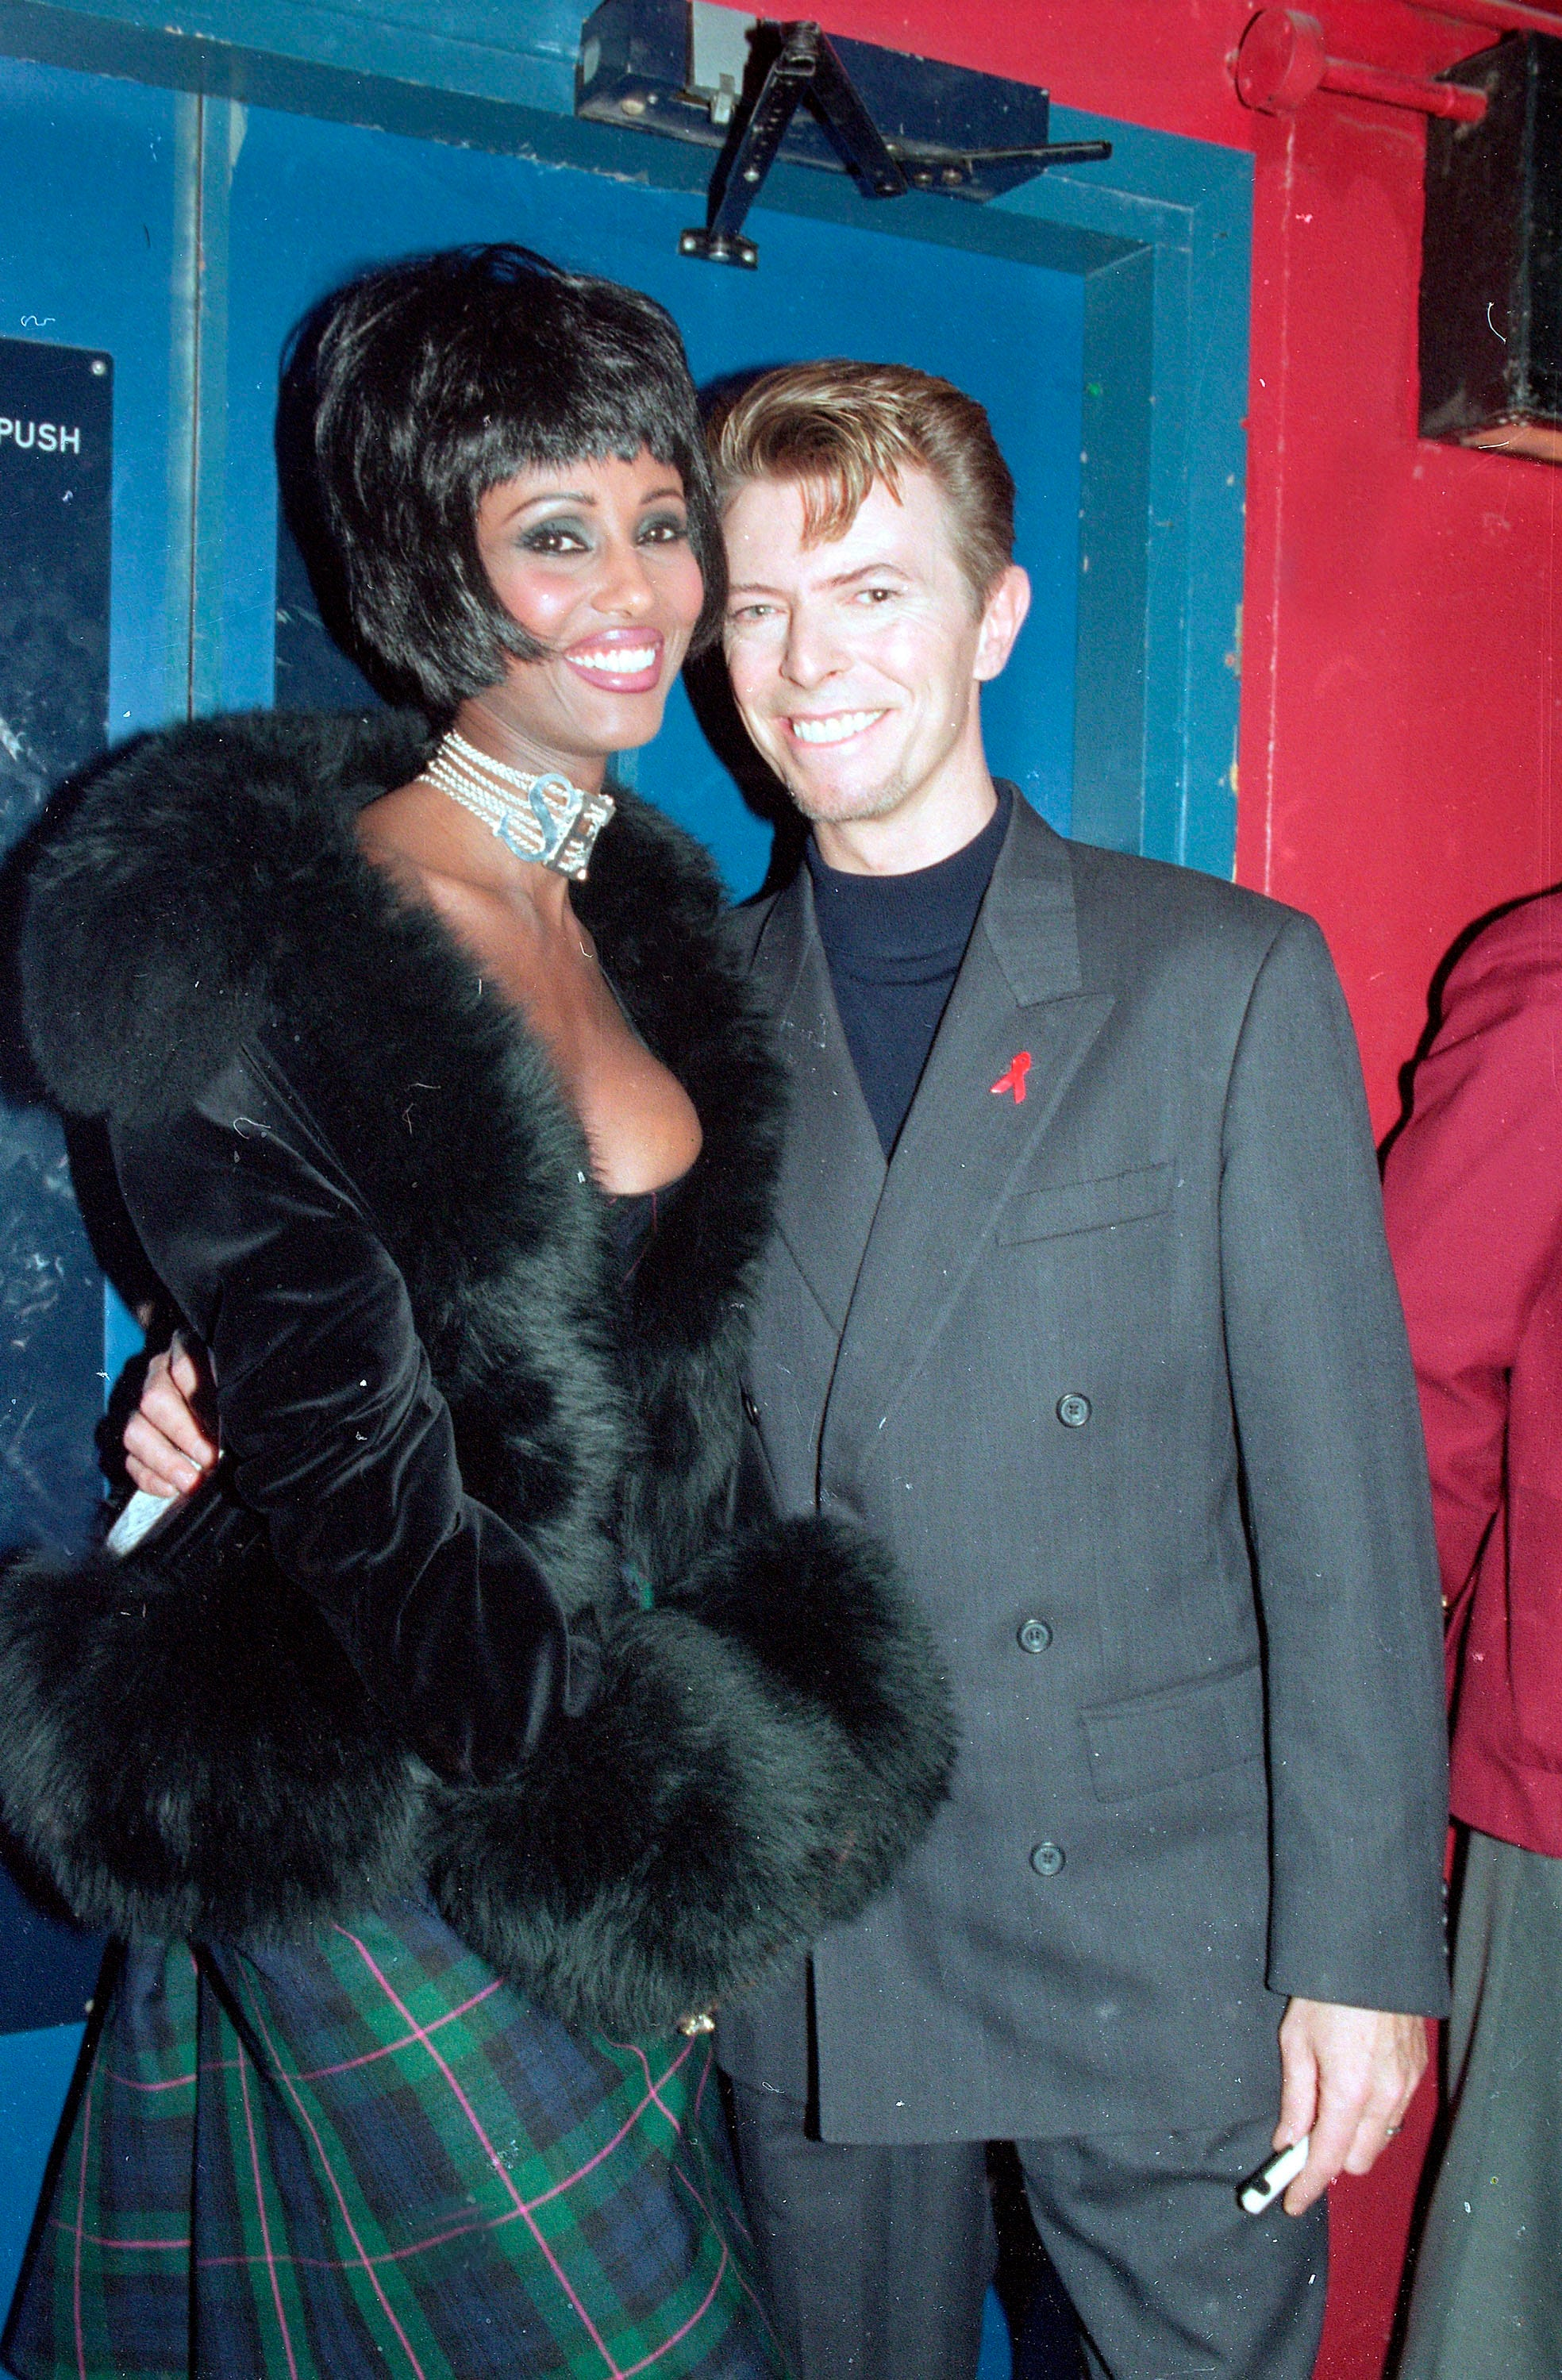 David Bowie's wife Iman honors him on his birthday: 'My memory loves you'